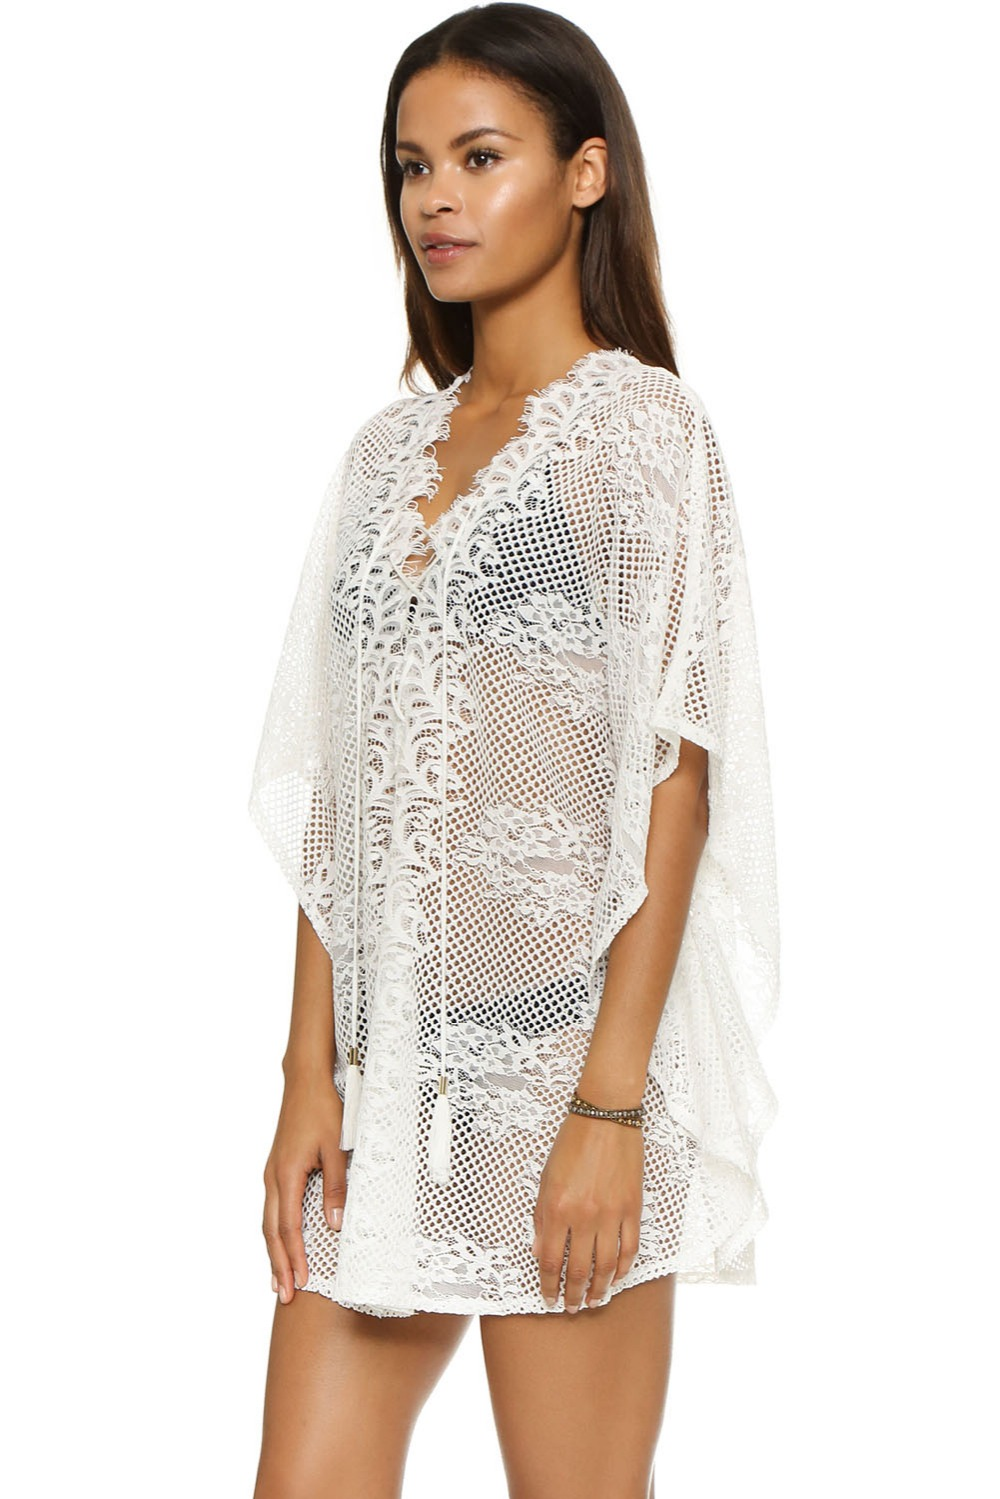 buy sexy women white strap lace crochet patchwork beach maxi dress at banggood